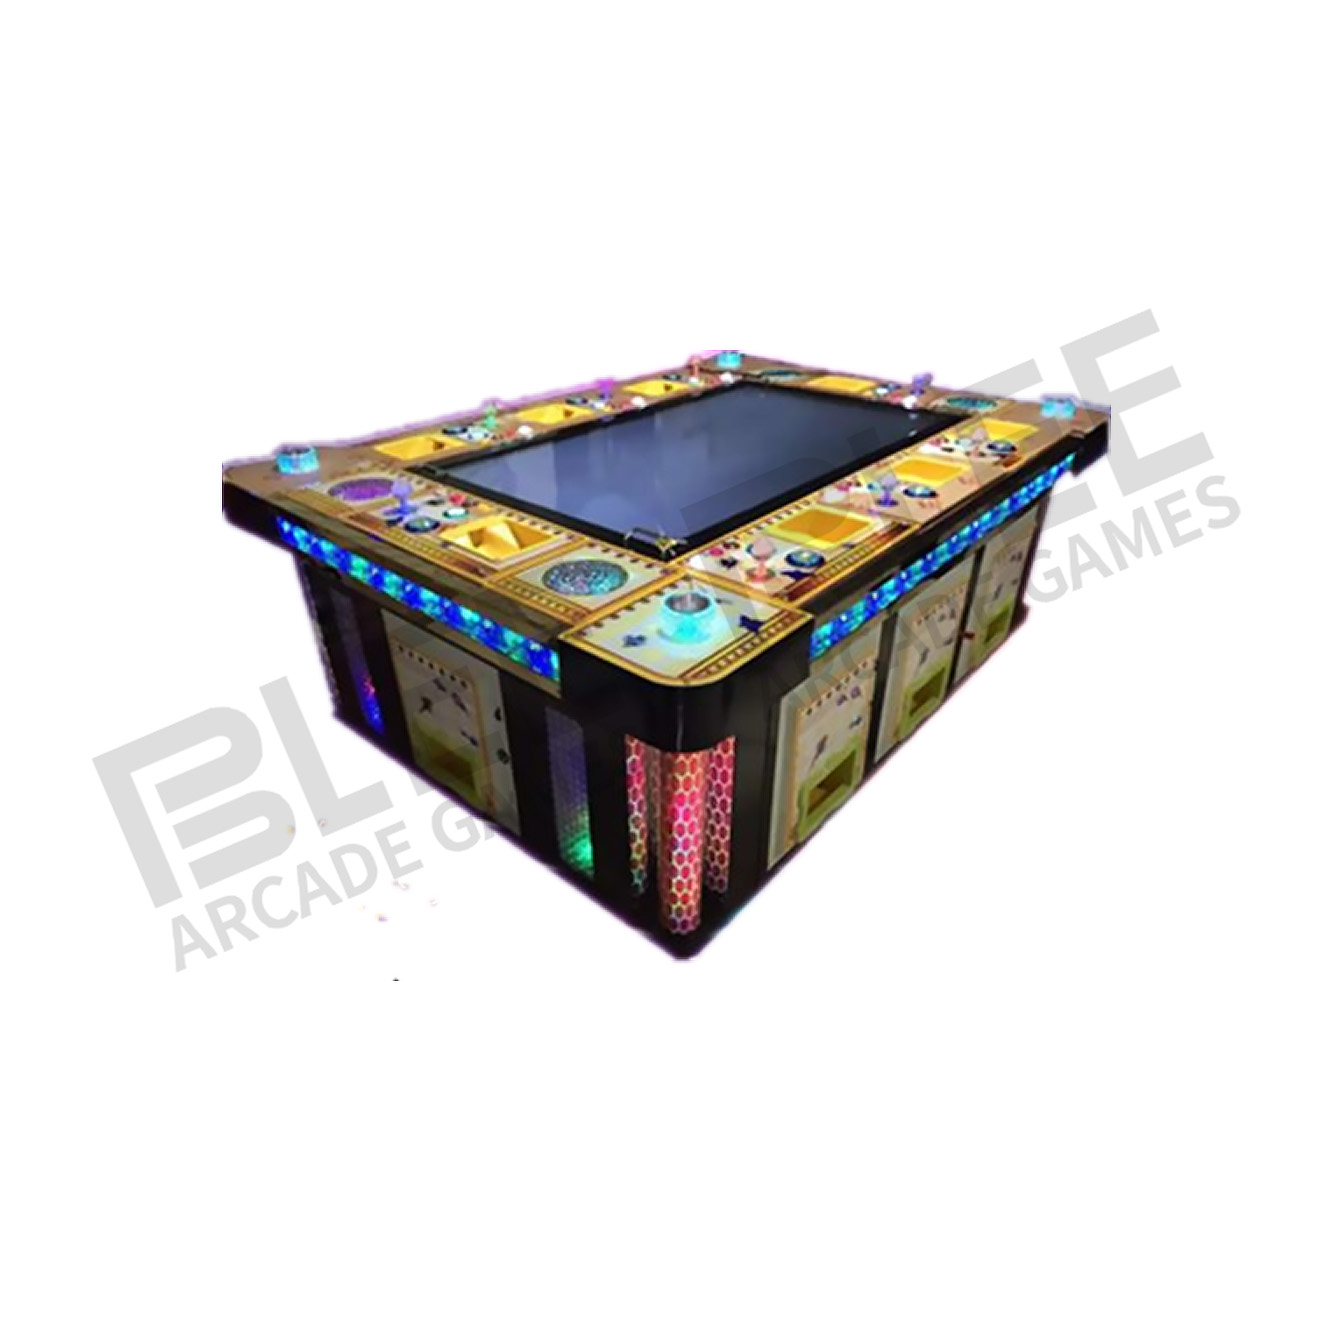 BLEE-Affordable Fish Table Game | New Arcade Machines For Sale Factory